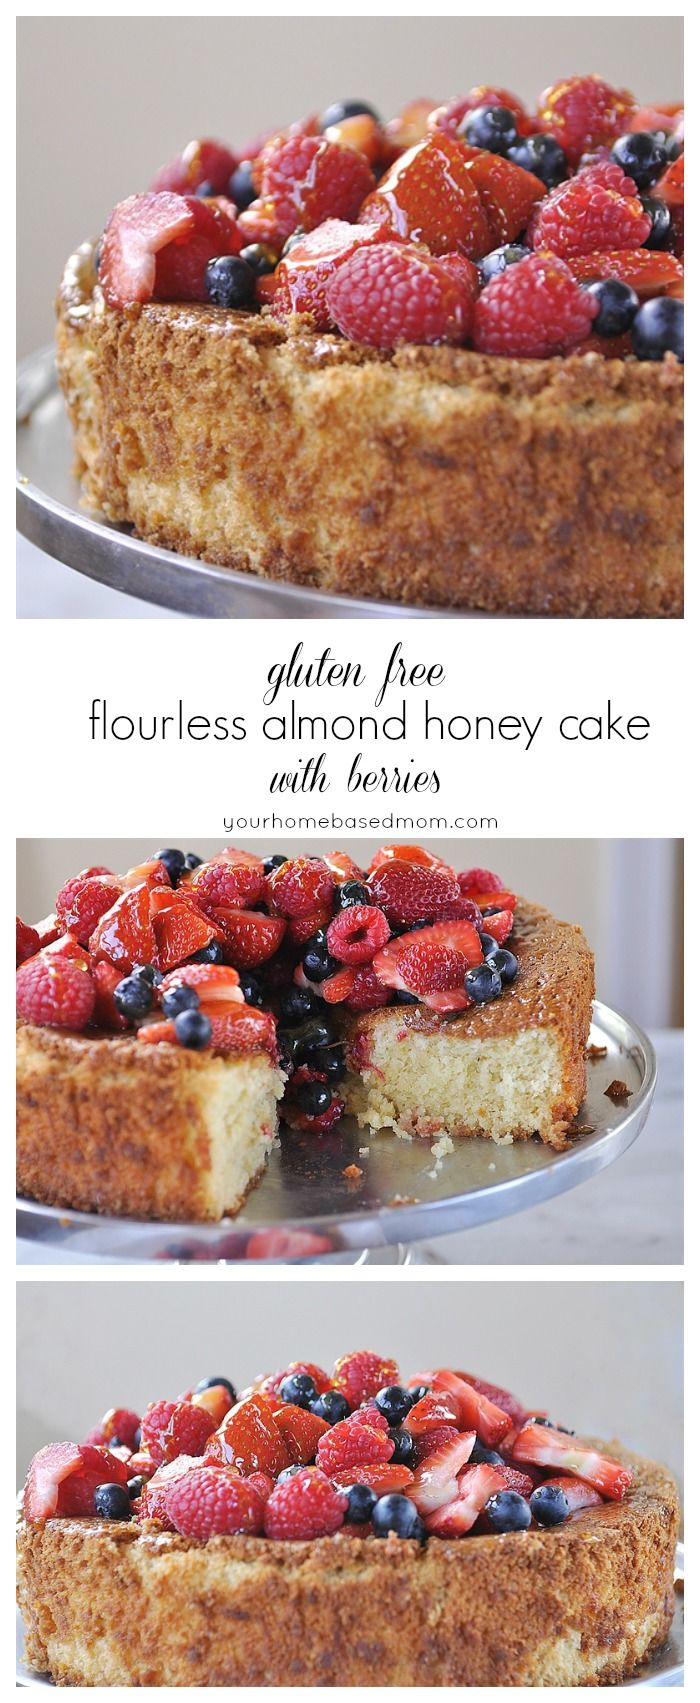 gluten free  flourless almond honey cake with berries - it's amazing!!!  No one will know it's gluten free @yourhomebasedmom.com